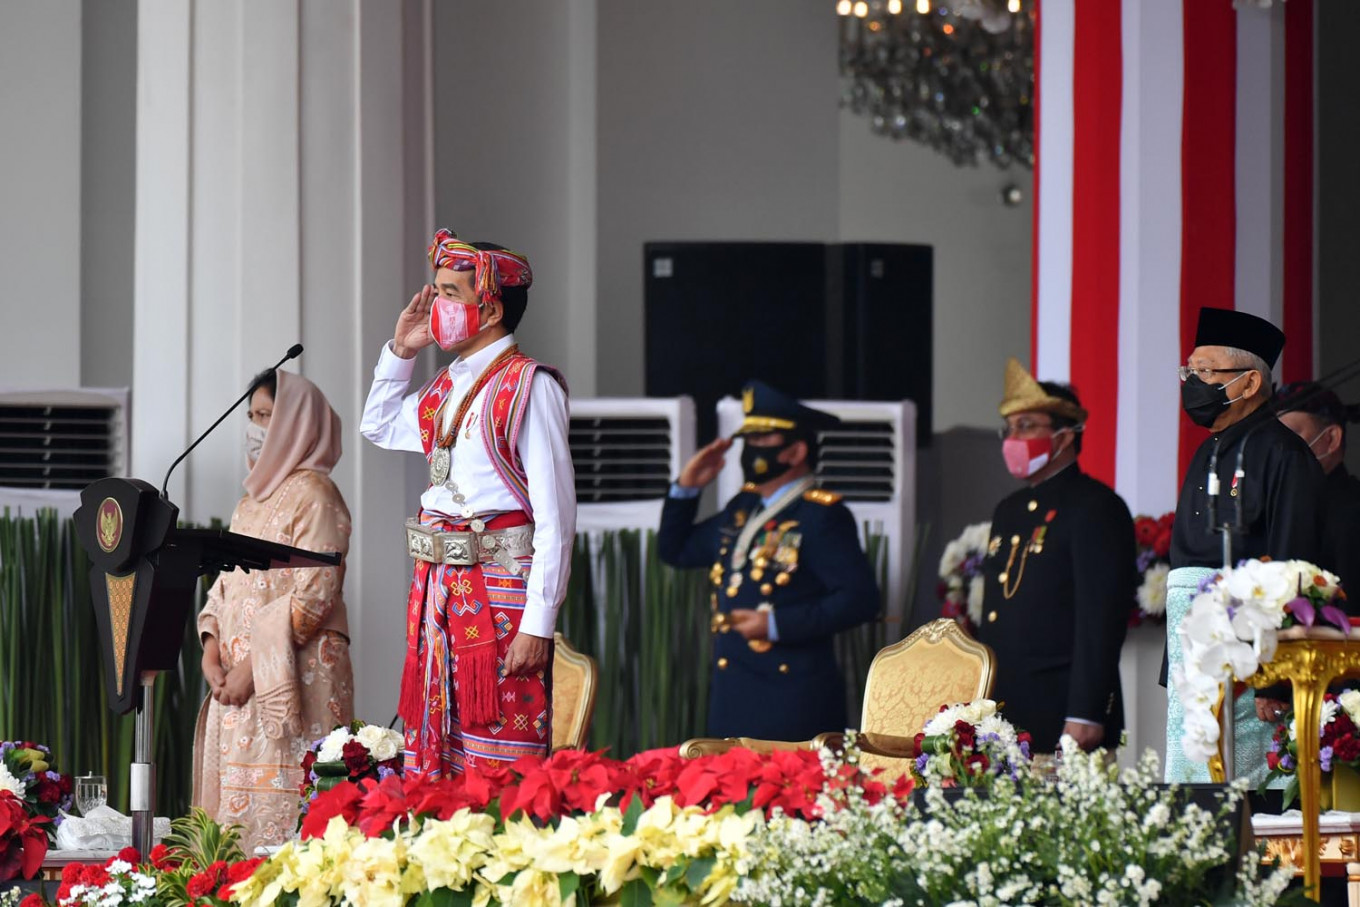 Jokowi's traditional attire draws attention to forced eviction of indigenous group